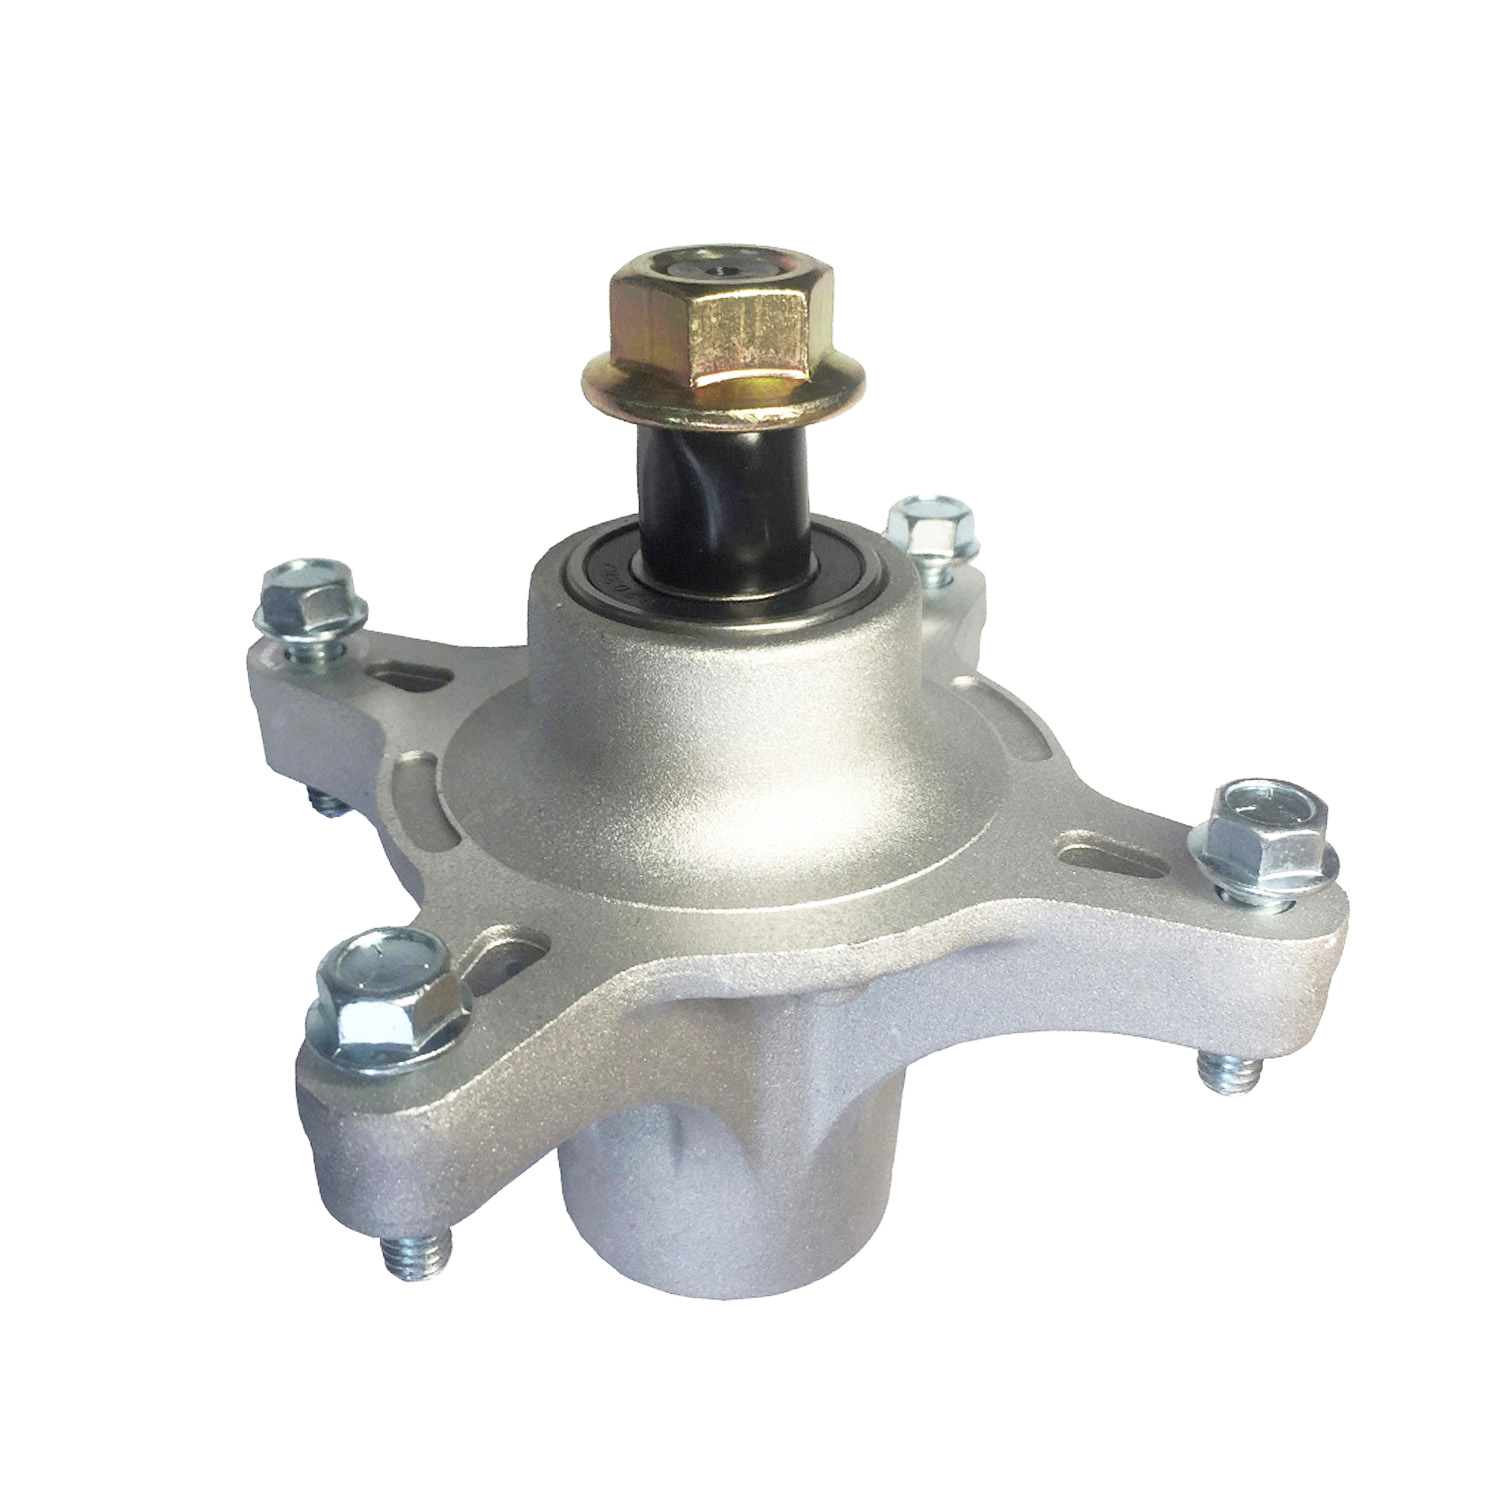 Mower Spindle assembly for Exmark: 117-7268, 117-7439, Toro 121-0751, 117-7267, 117-7268, 117-7439